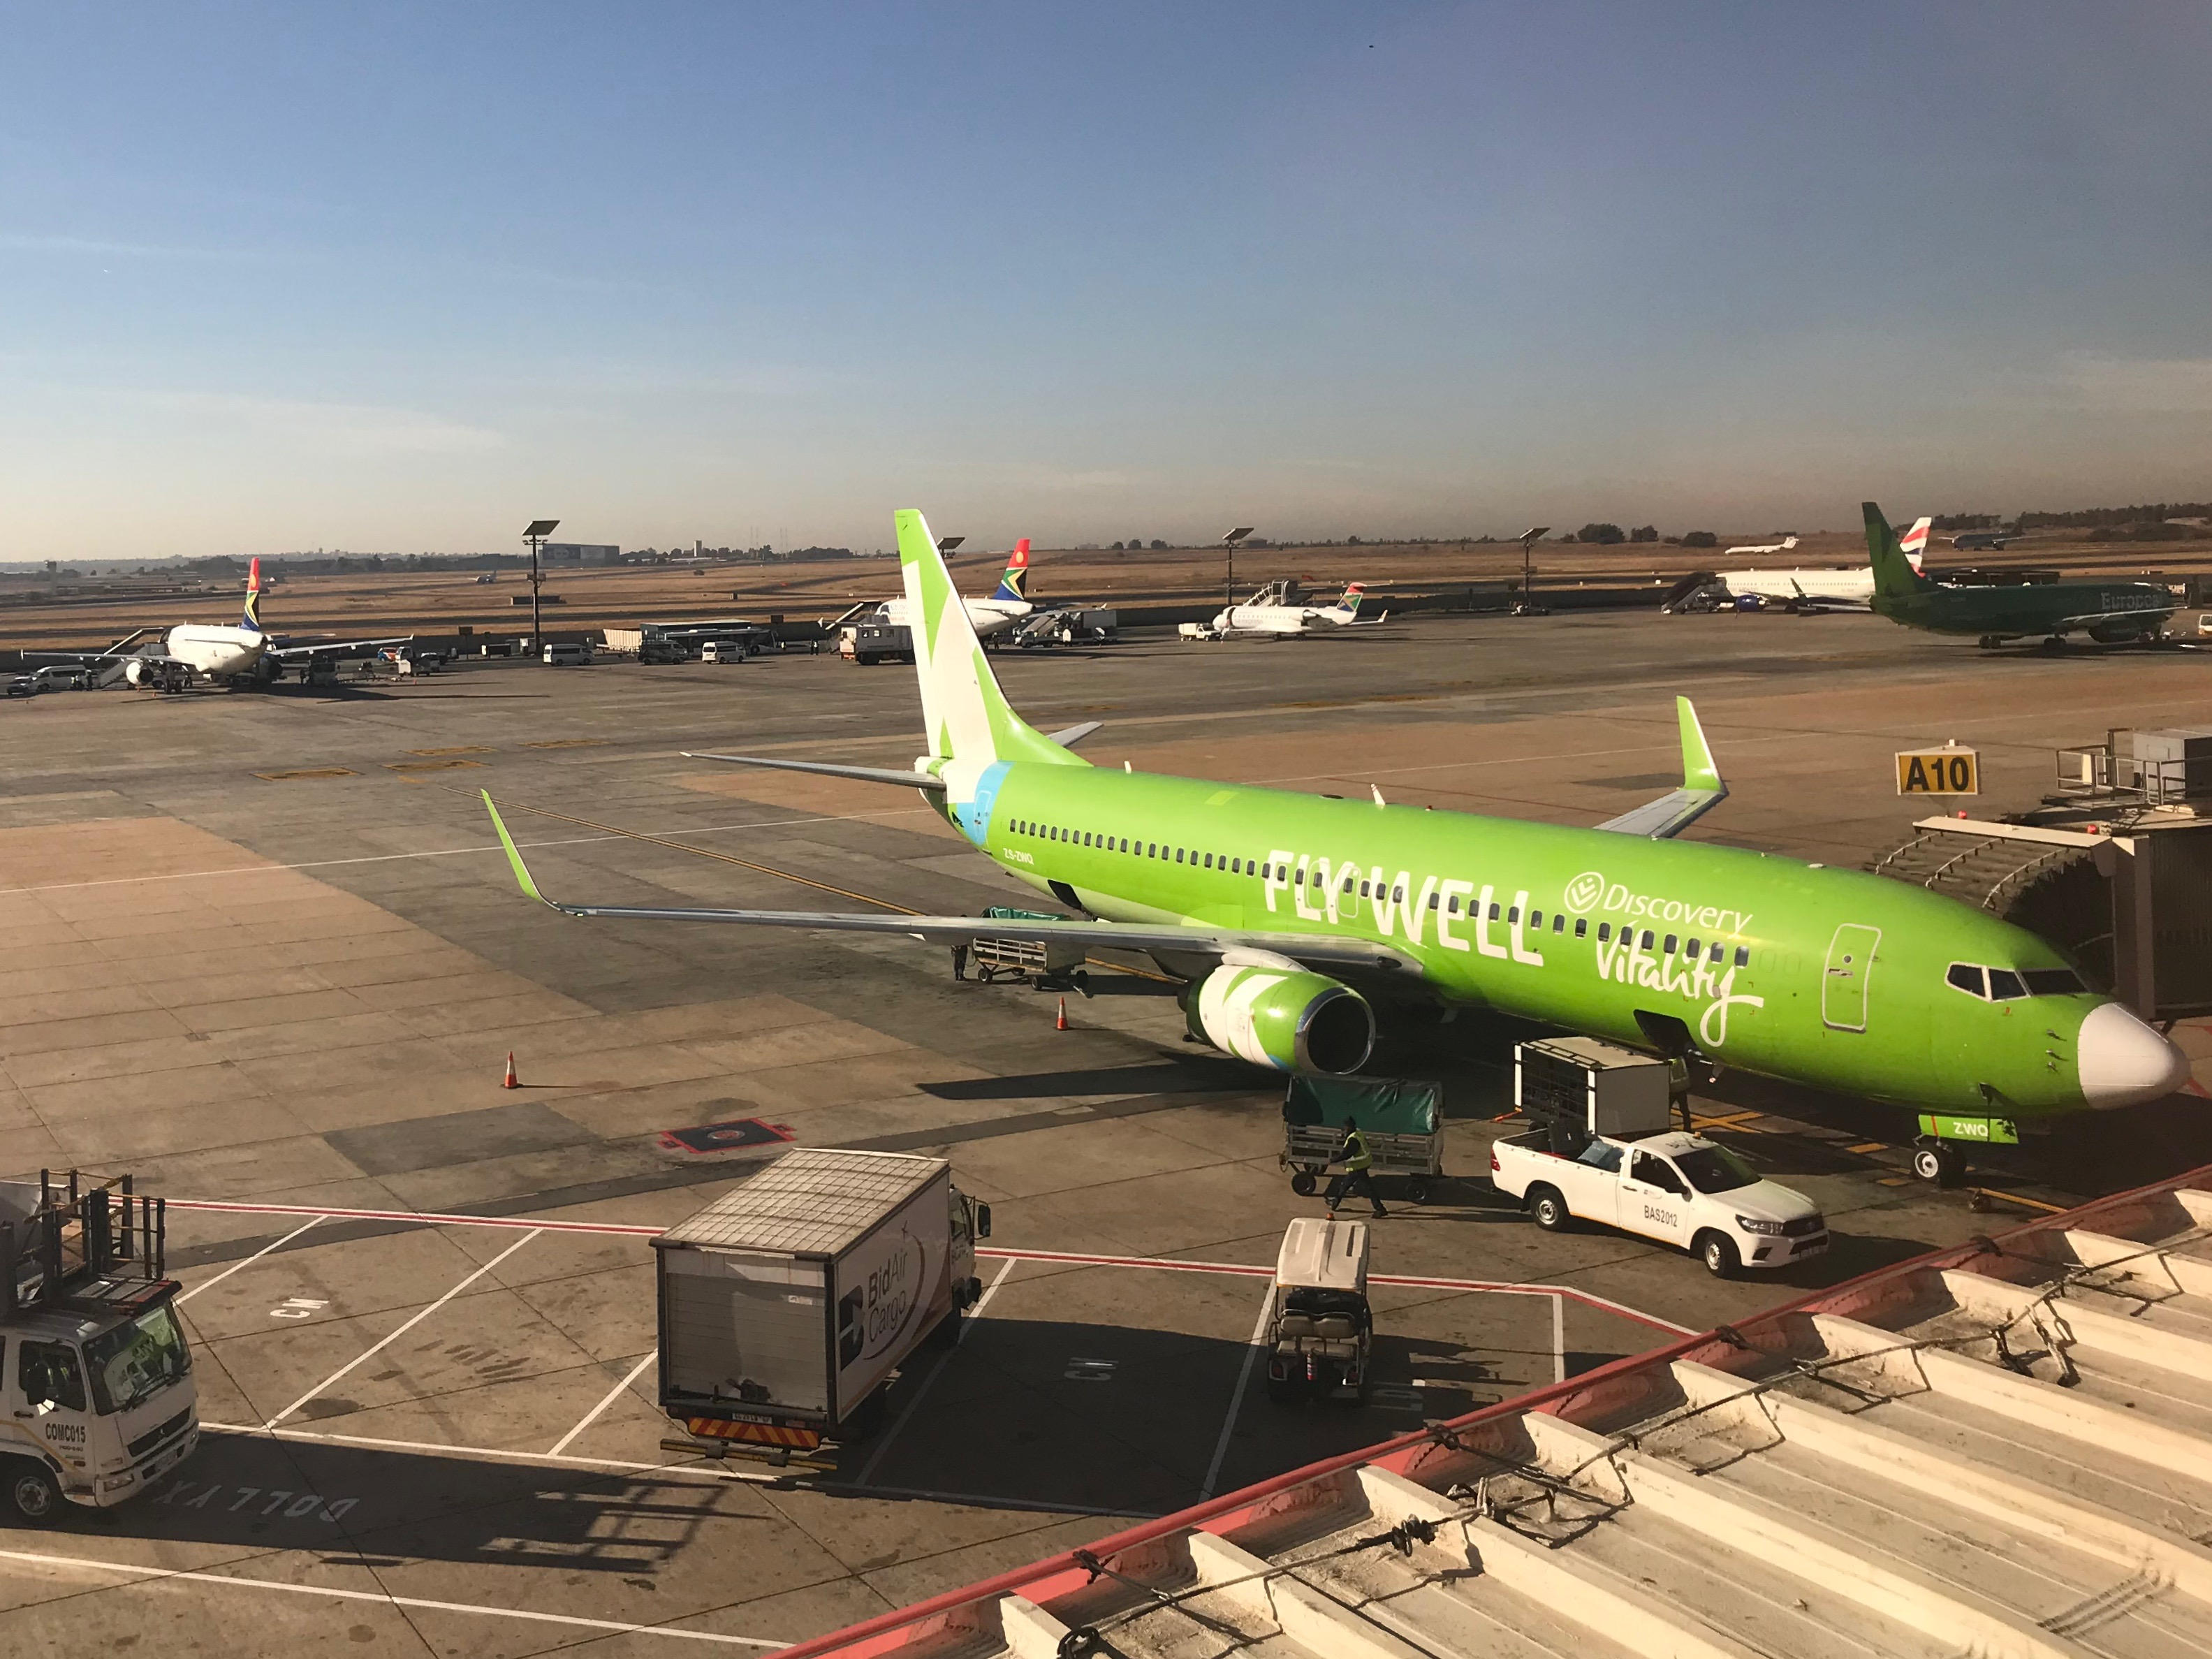 Review Kulula S 737 Economy Class From Johannesburg To Cape Town Air Travel Analysis